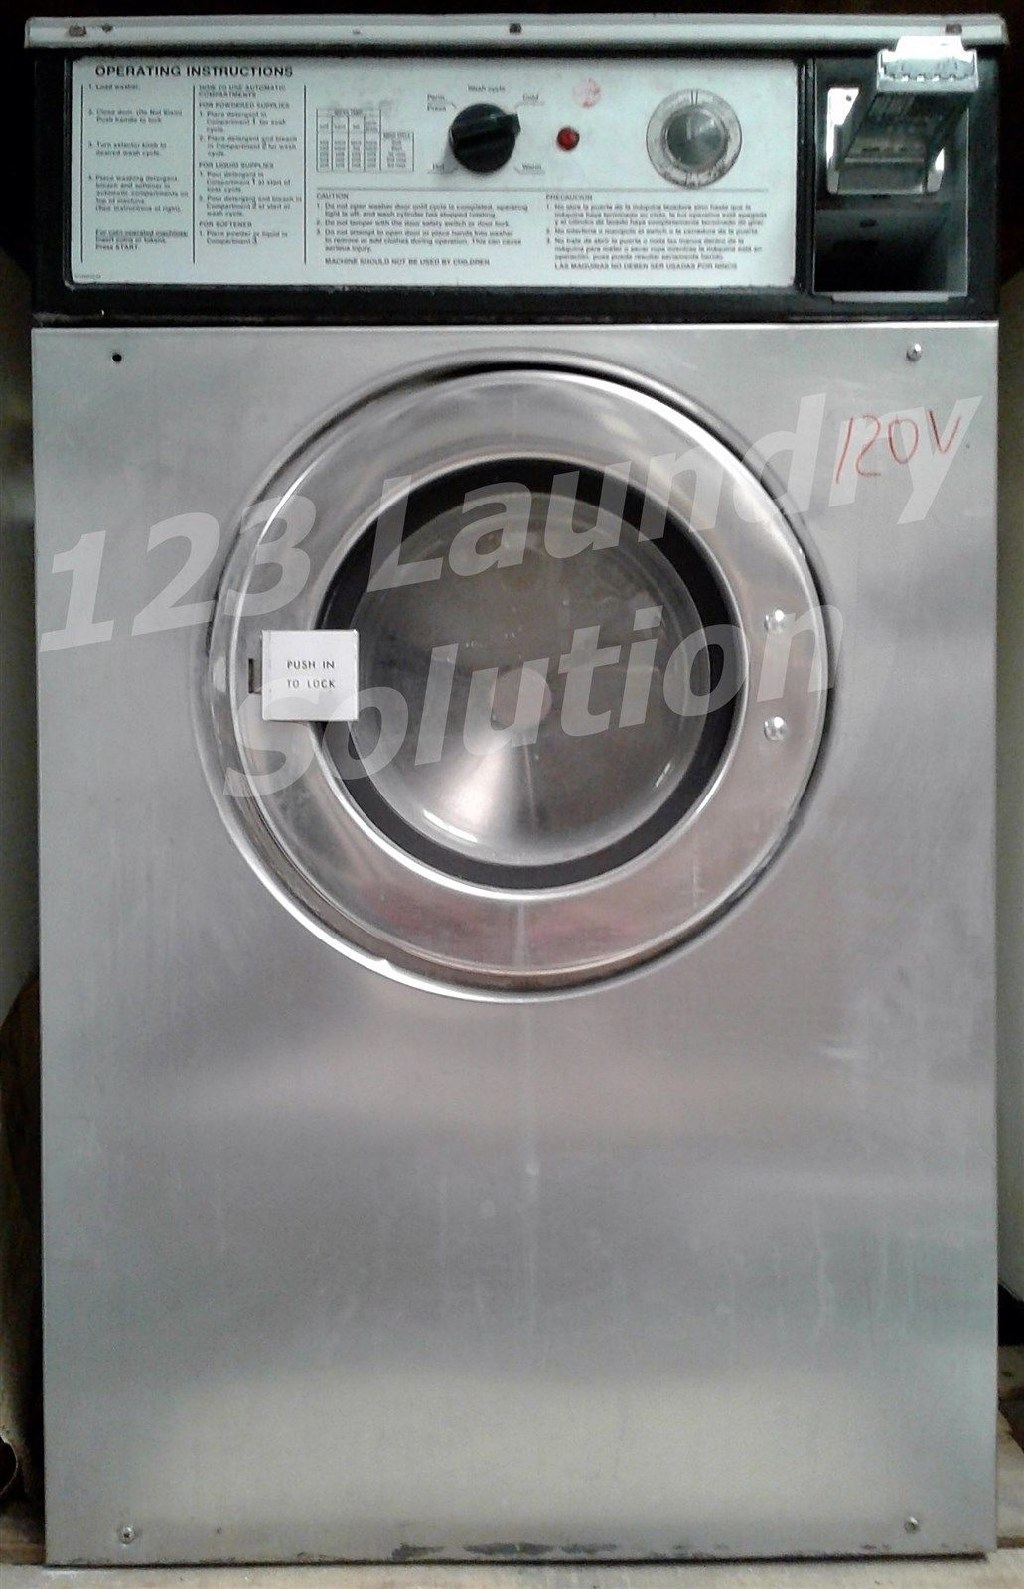 Coin Laundry Wascomat Front Load Washer Double Load W74 120V Stainless Steel